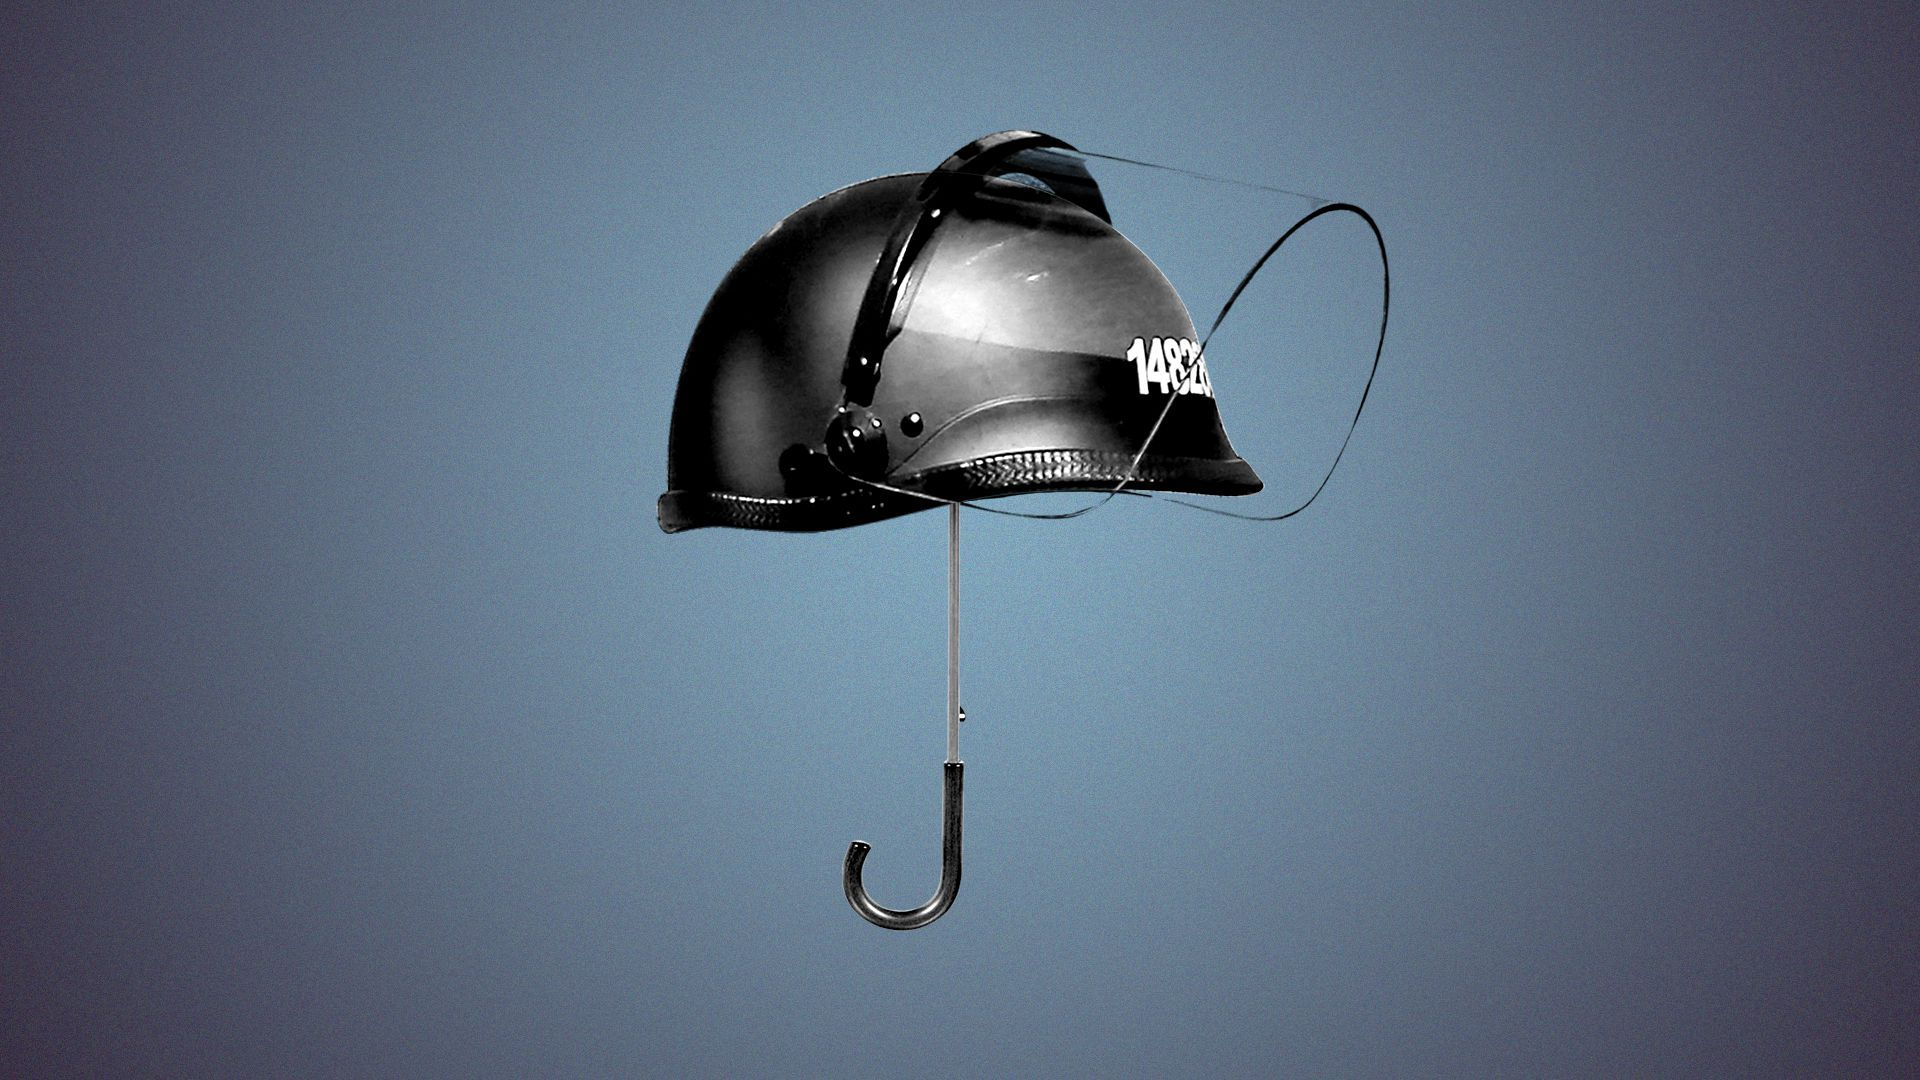 Photo illustration of a police helmet with an umbrella handle sticking out of the bottom.